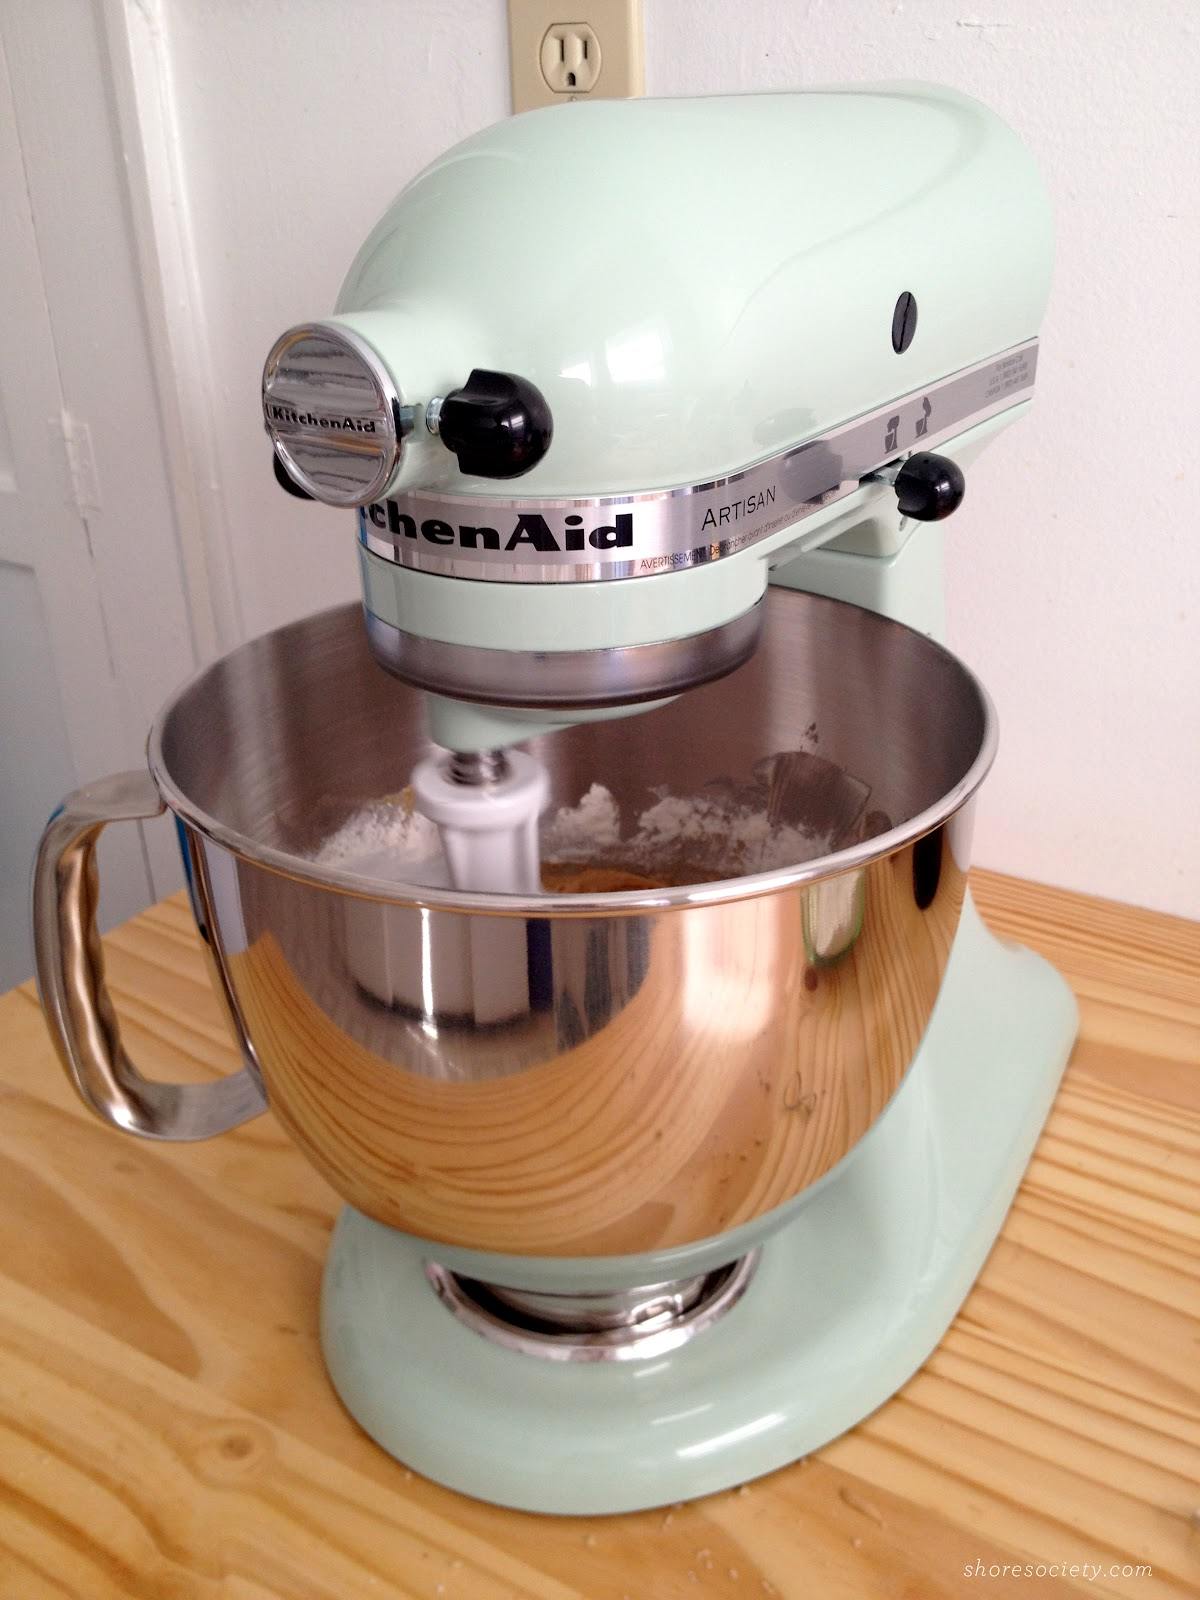 I Made Them Once Before, And Gave Them The Honor Of Being The First Batch  To Come From My New Pistachio KitchenAid Stand Mixer. Here She Is, Hard At  Work: